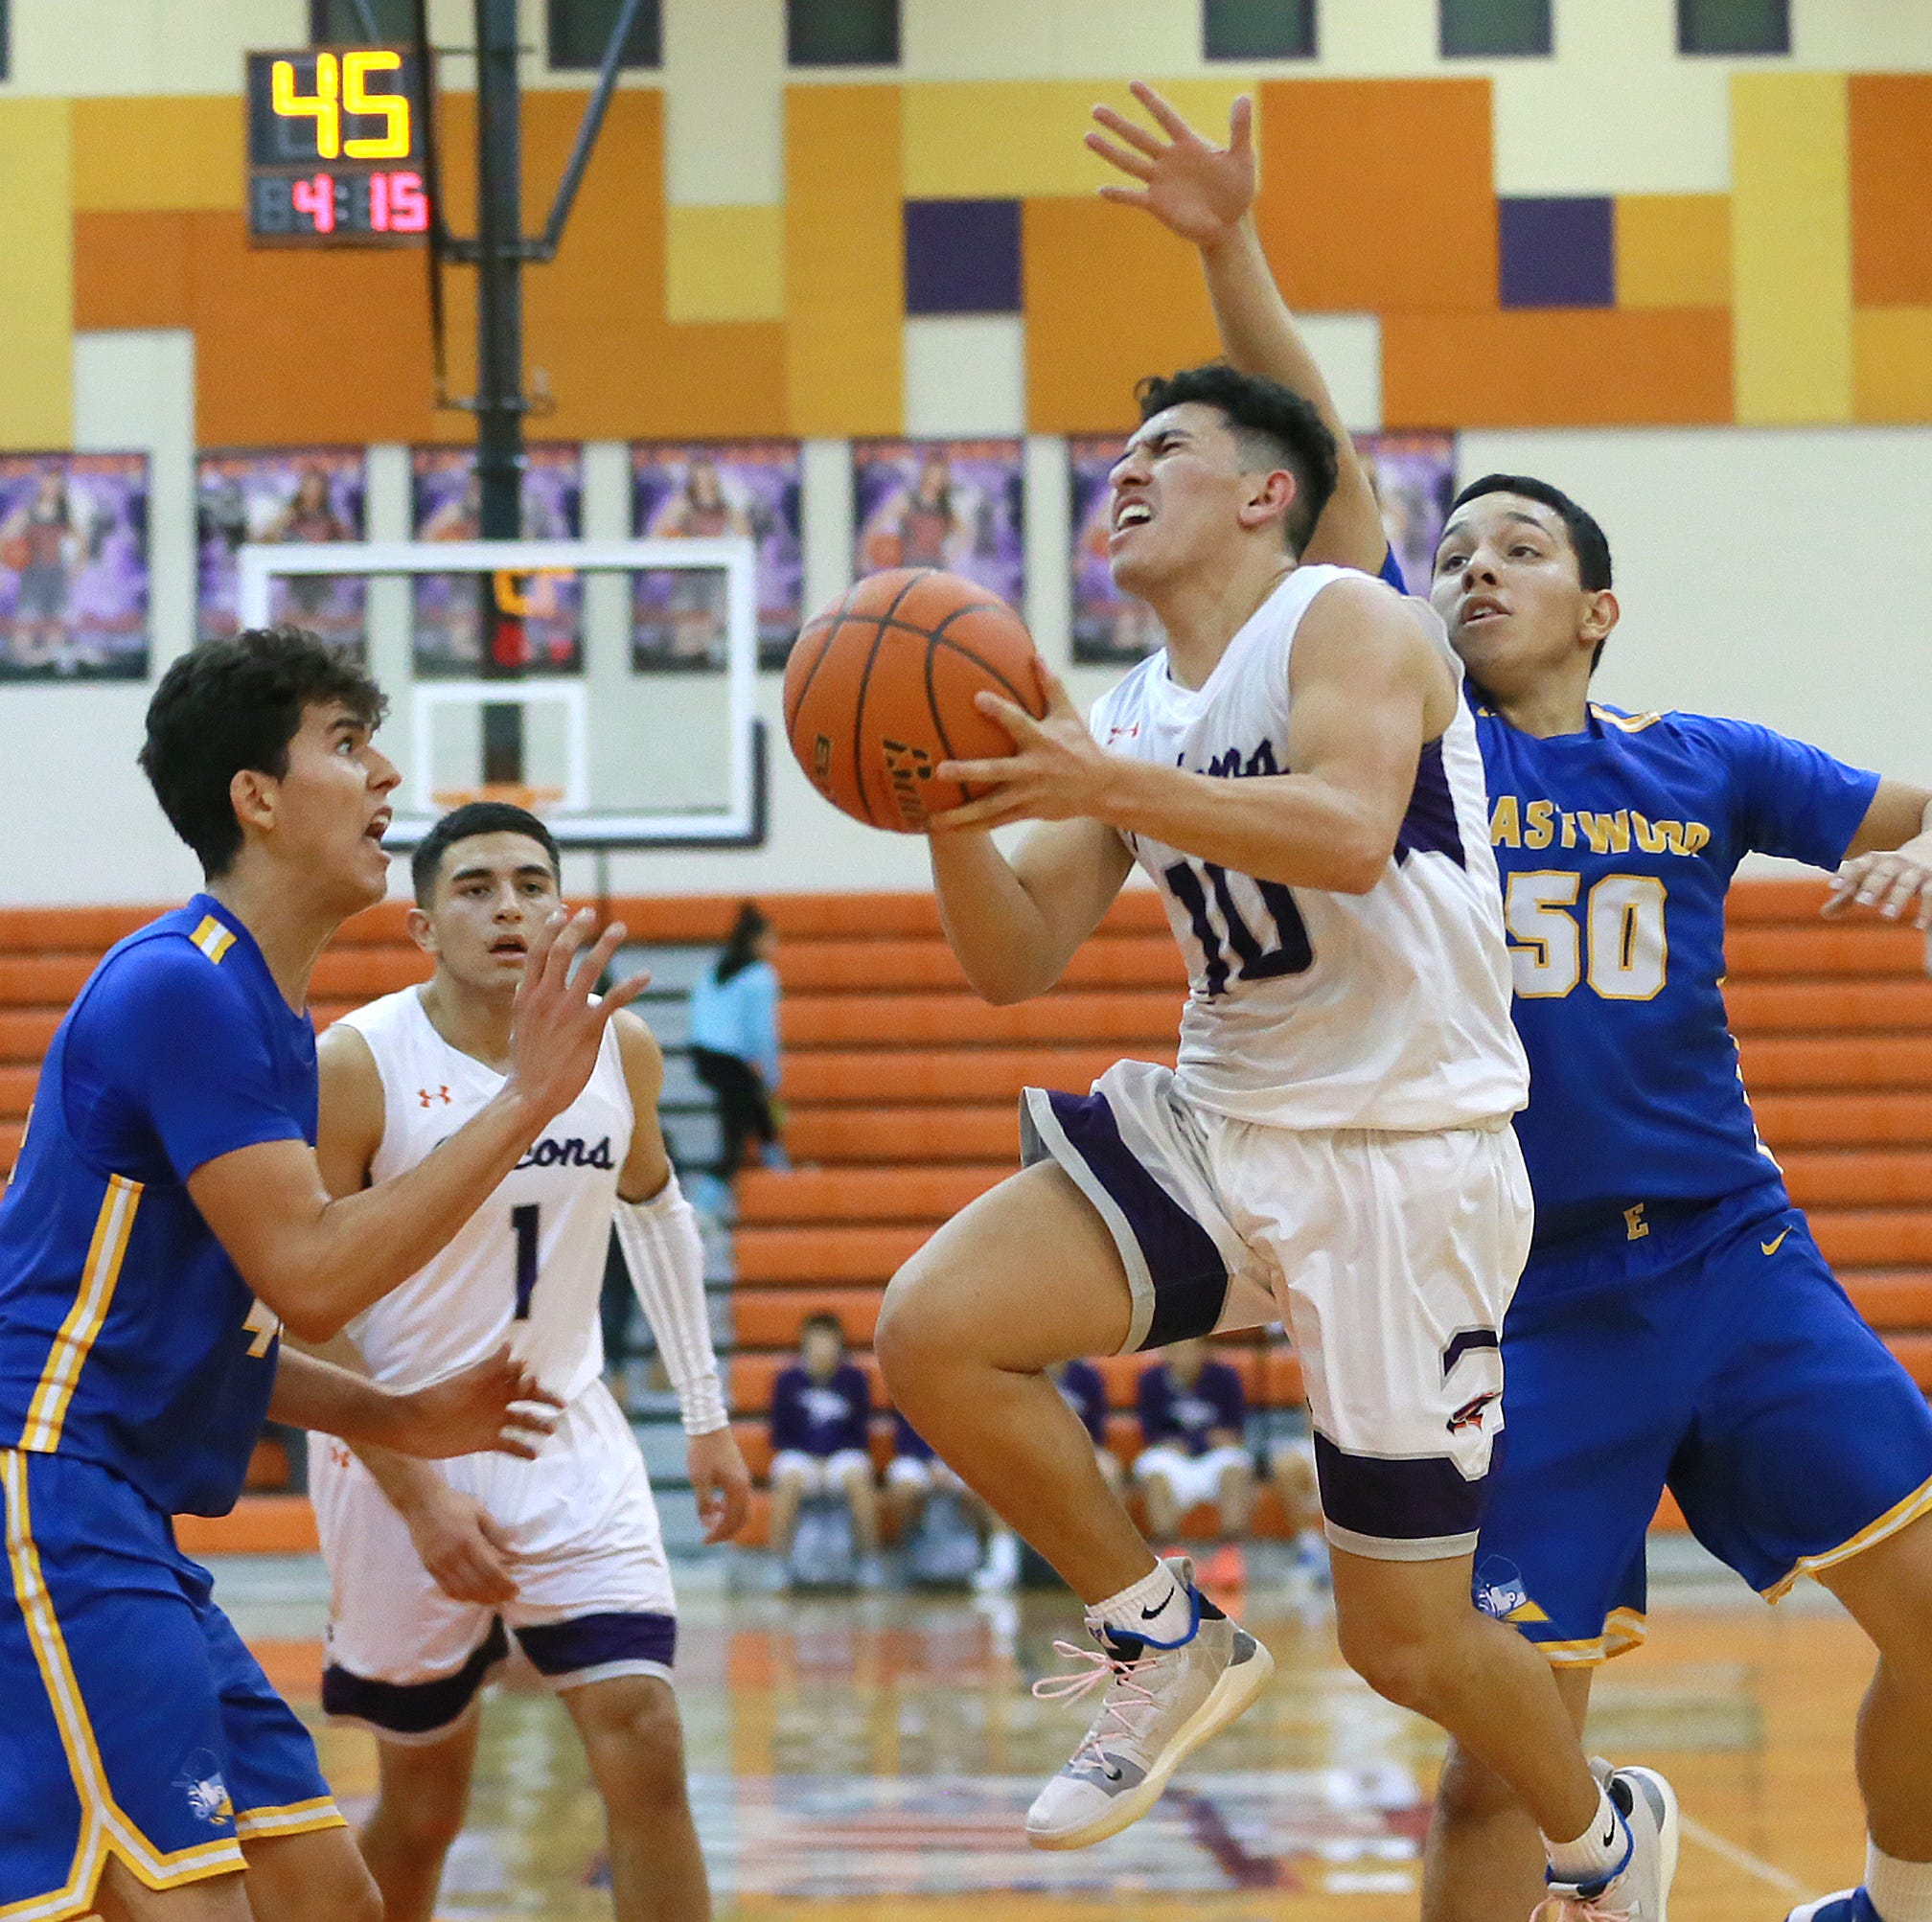 Eastlake battled back from a half-time deficit to beat Eastwood Tuesday night at Eastlake High School.